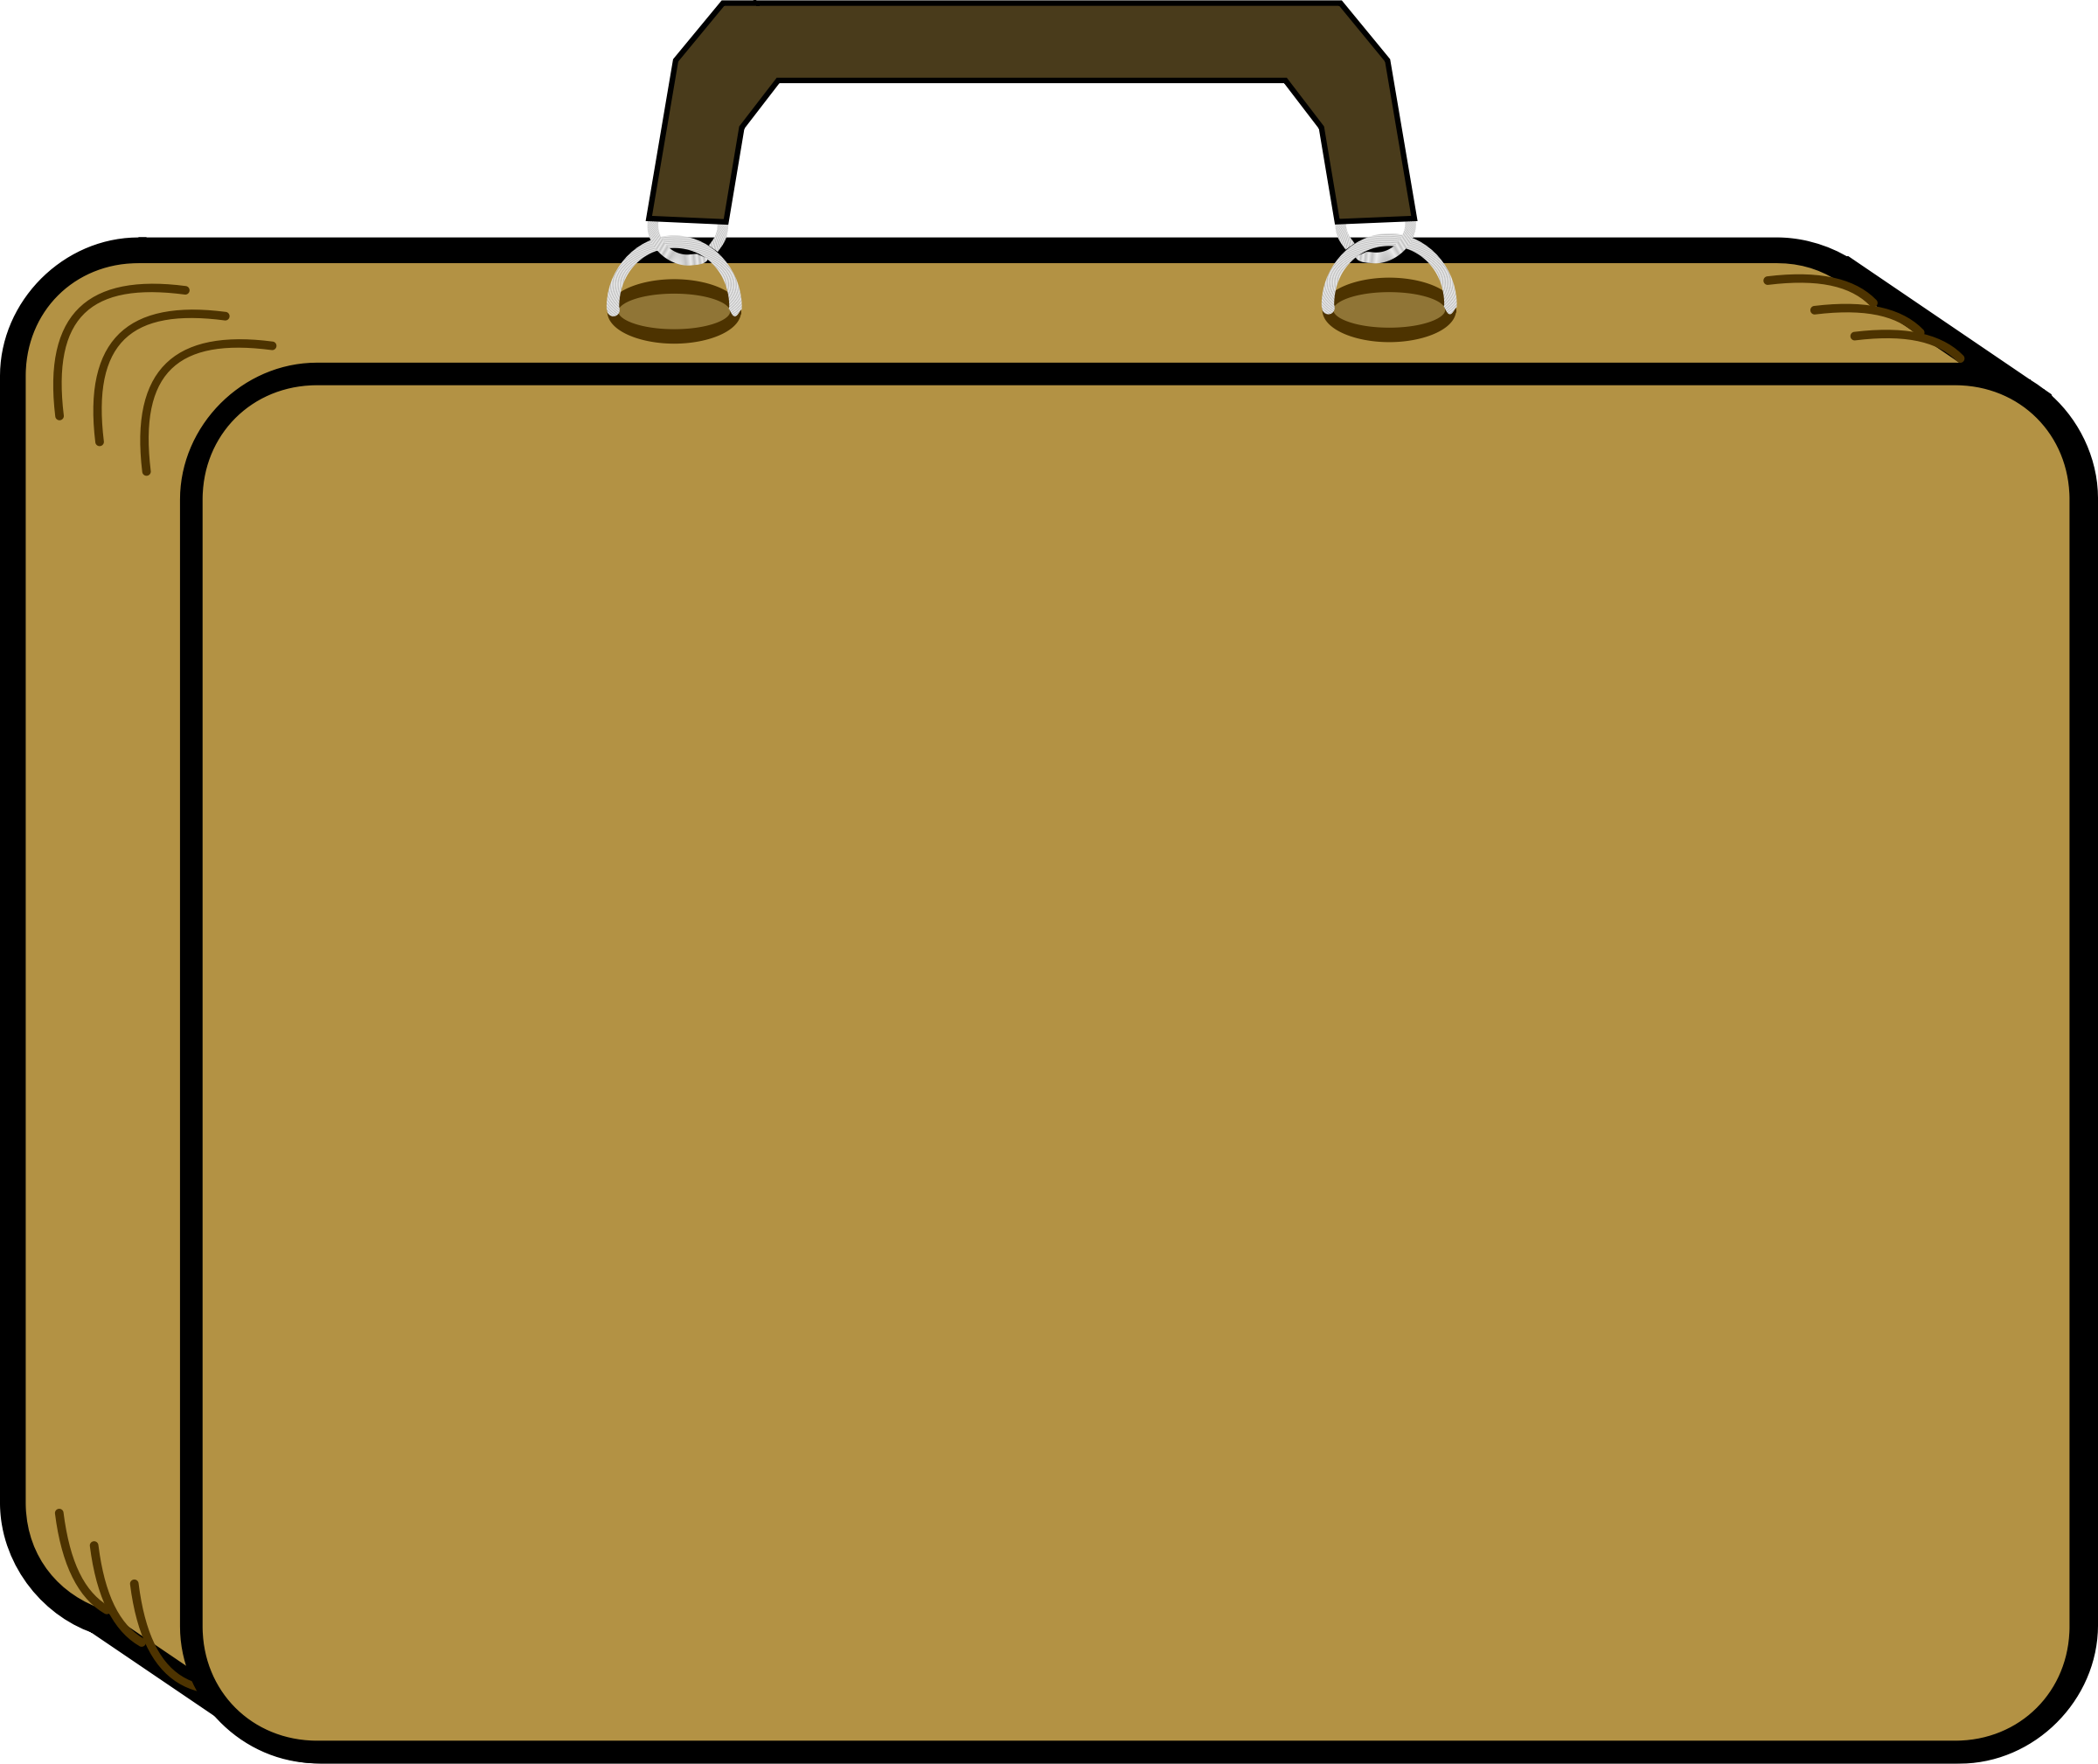 graphic black and white stock Suitcase clipart. Packing vintage free image